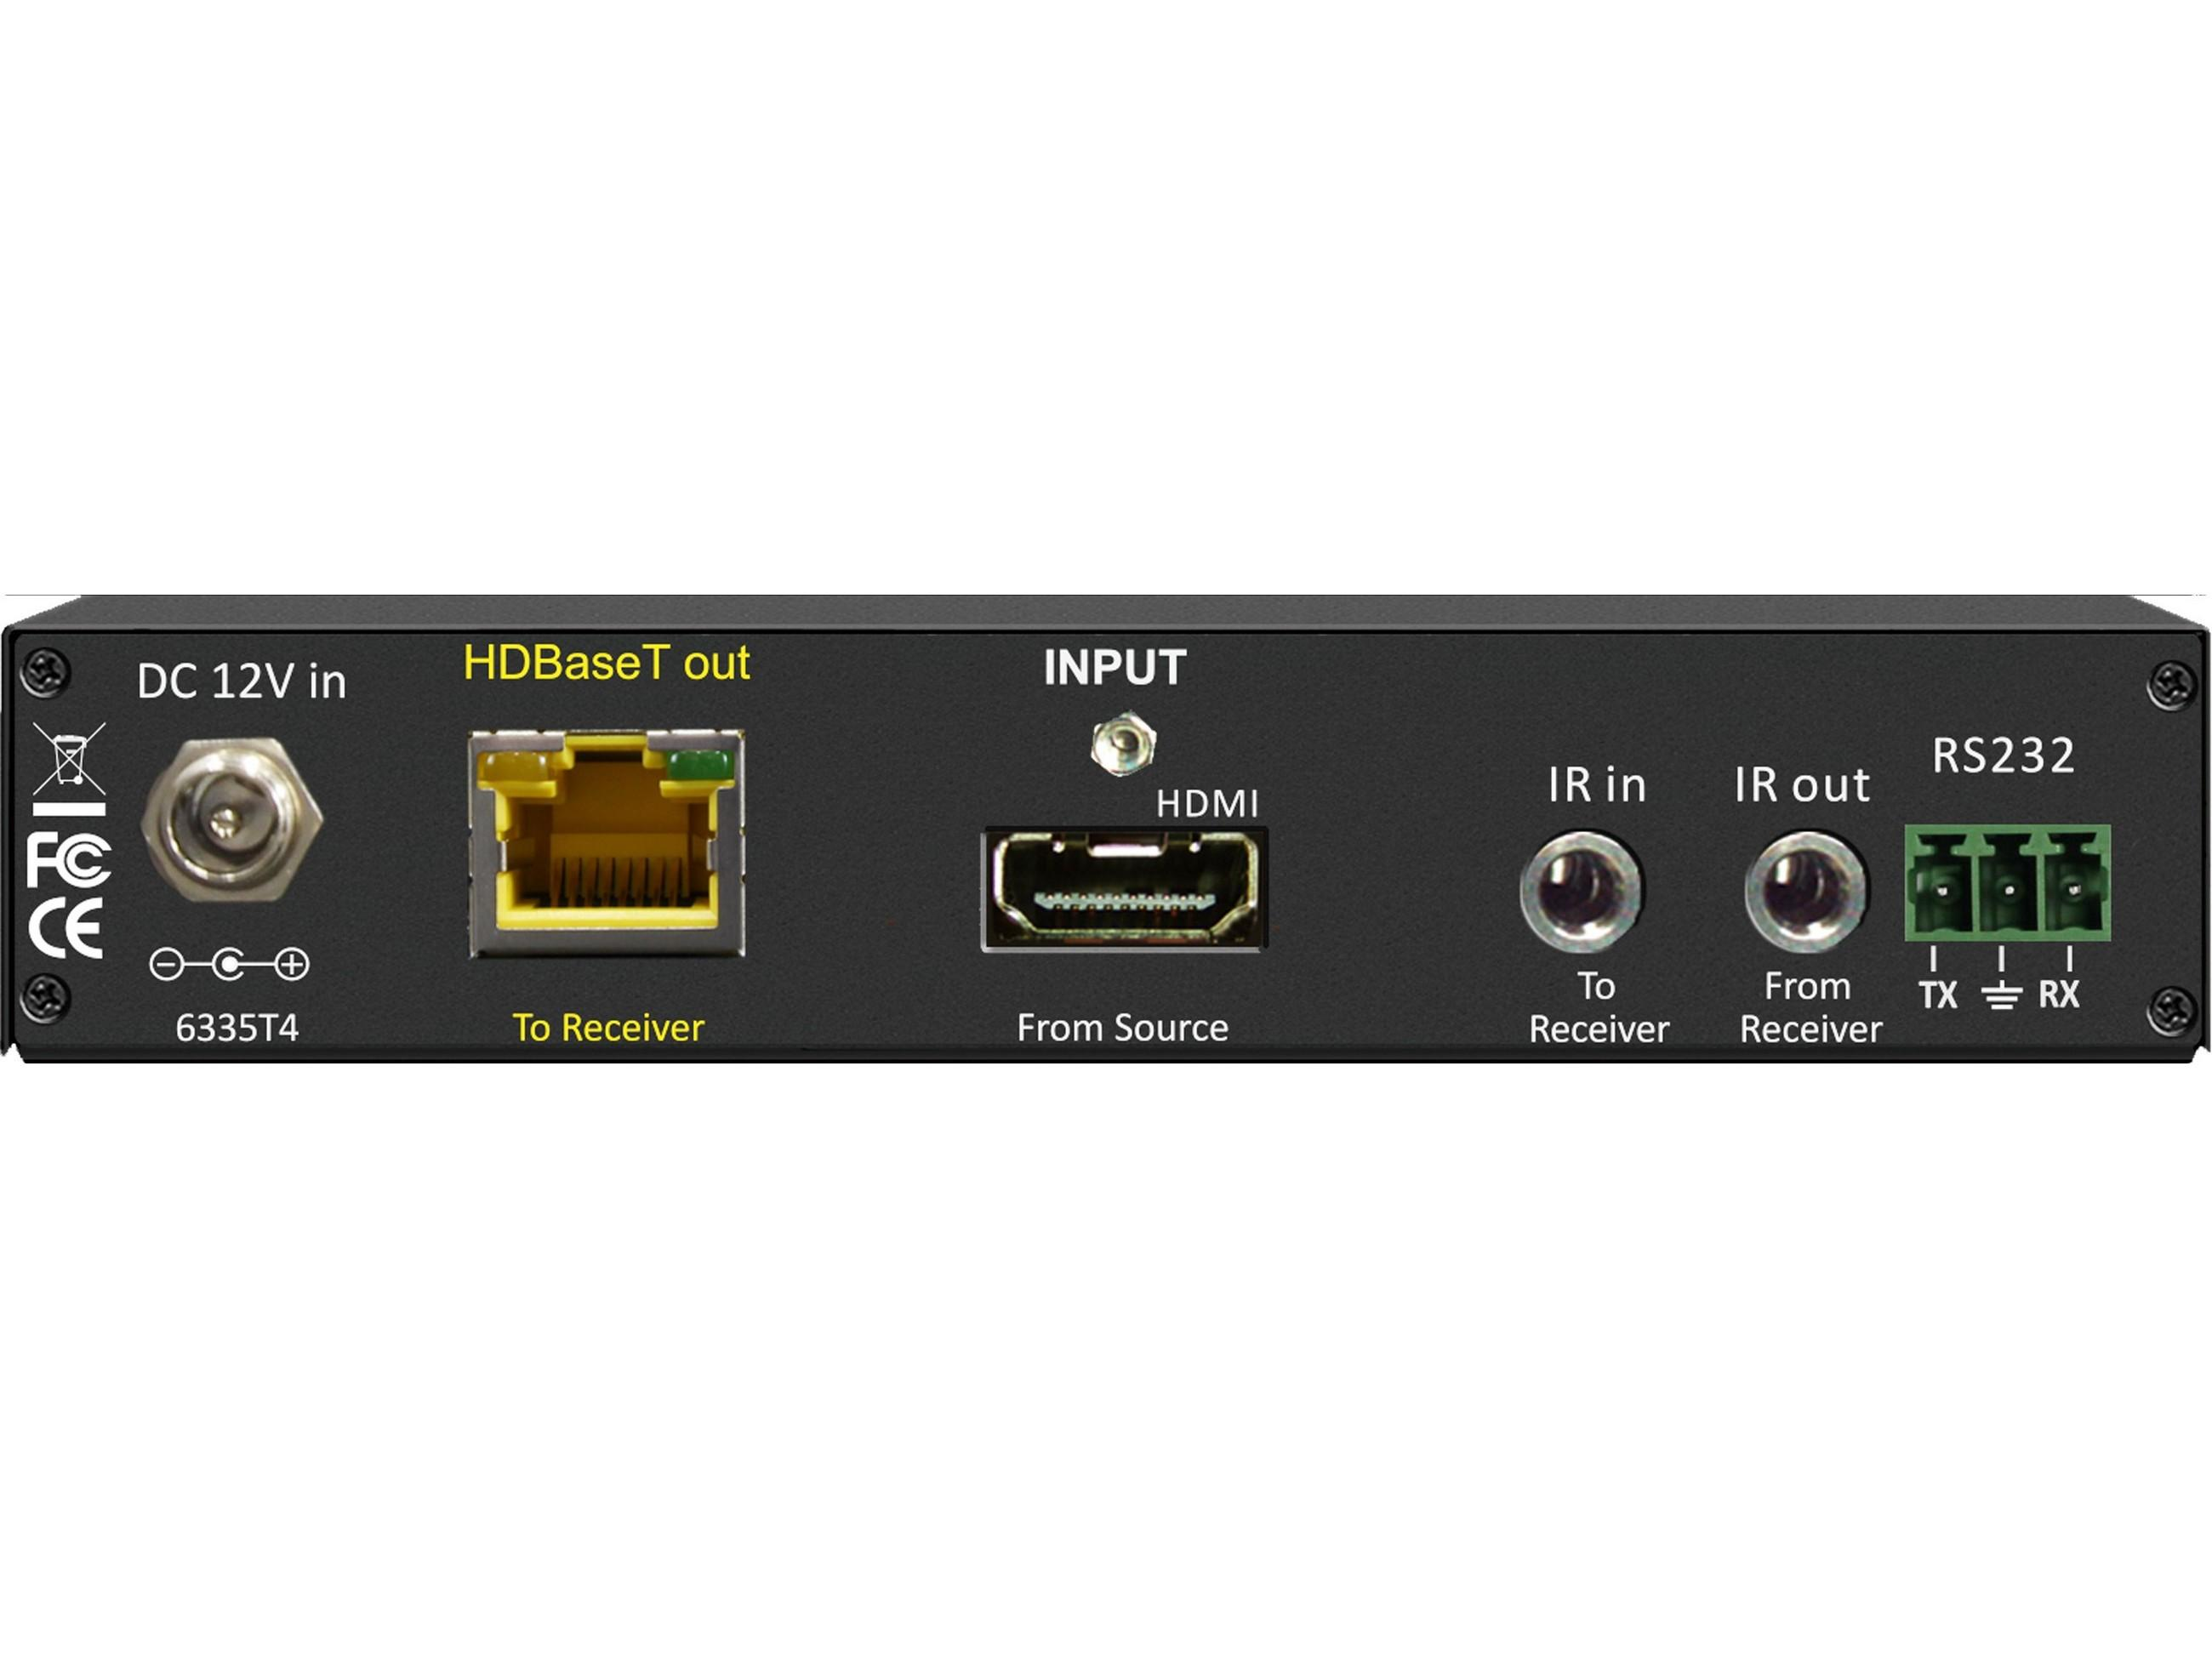 SB-6335T4 4 Play HDBaseT Extender (Transmitter) up to 330 ft with 2-way IR/RS-232 by Shinybow